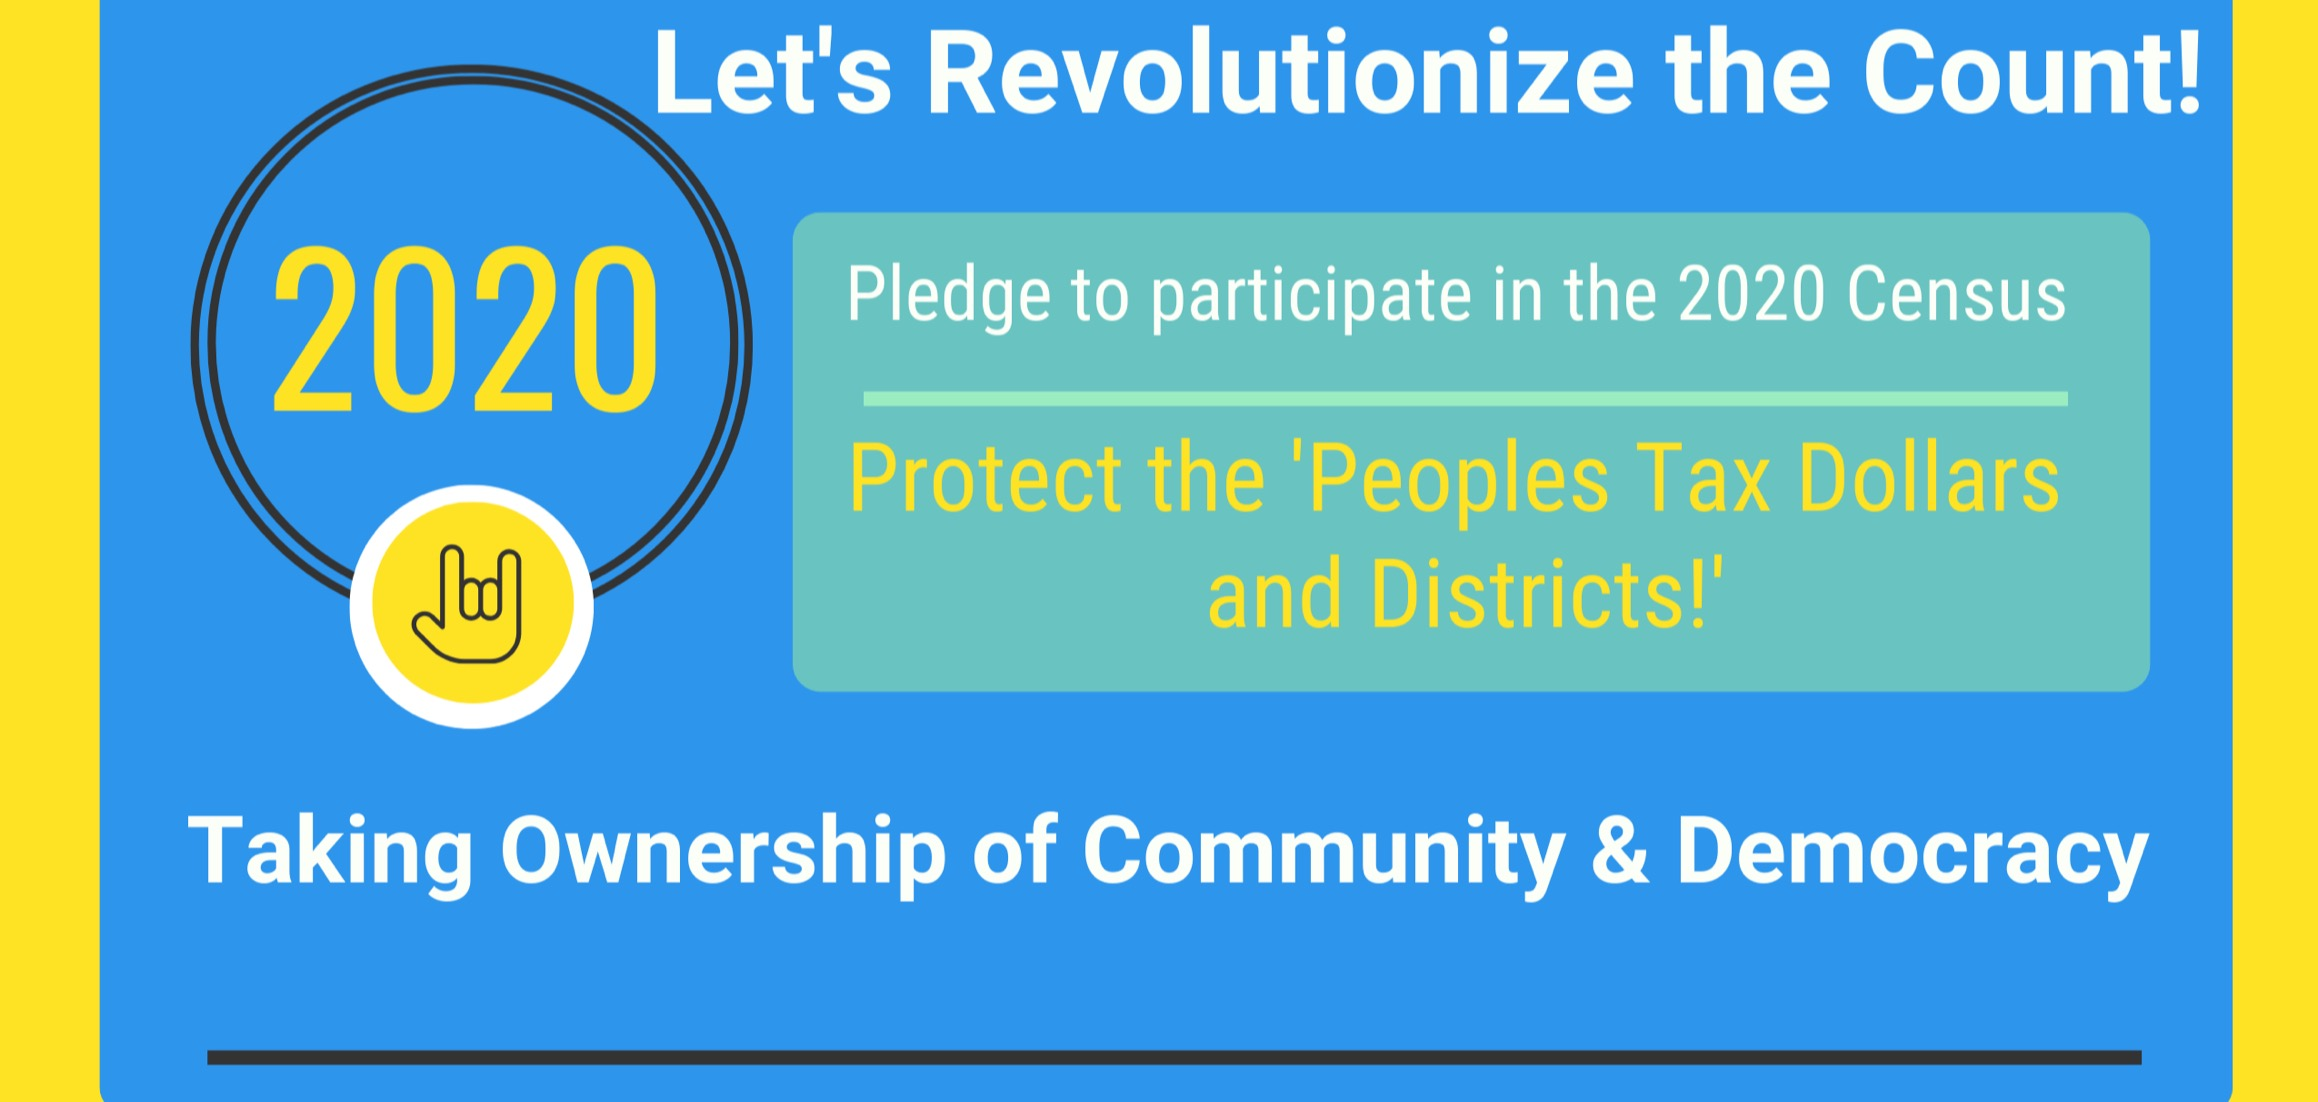 Sign the Pledge!